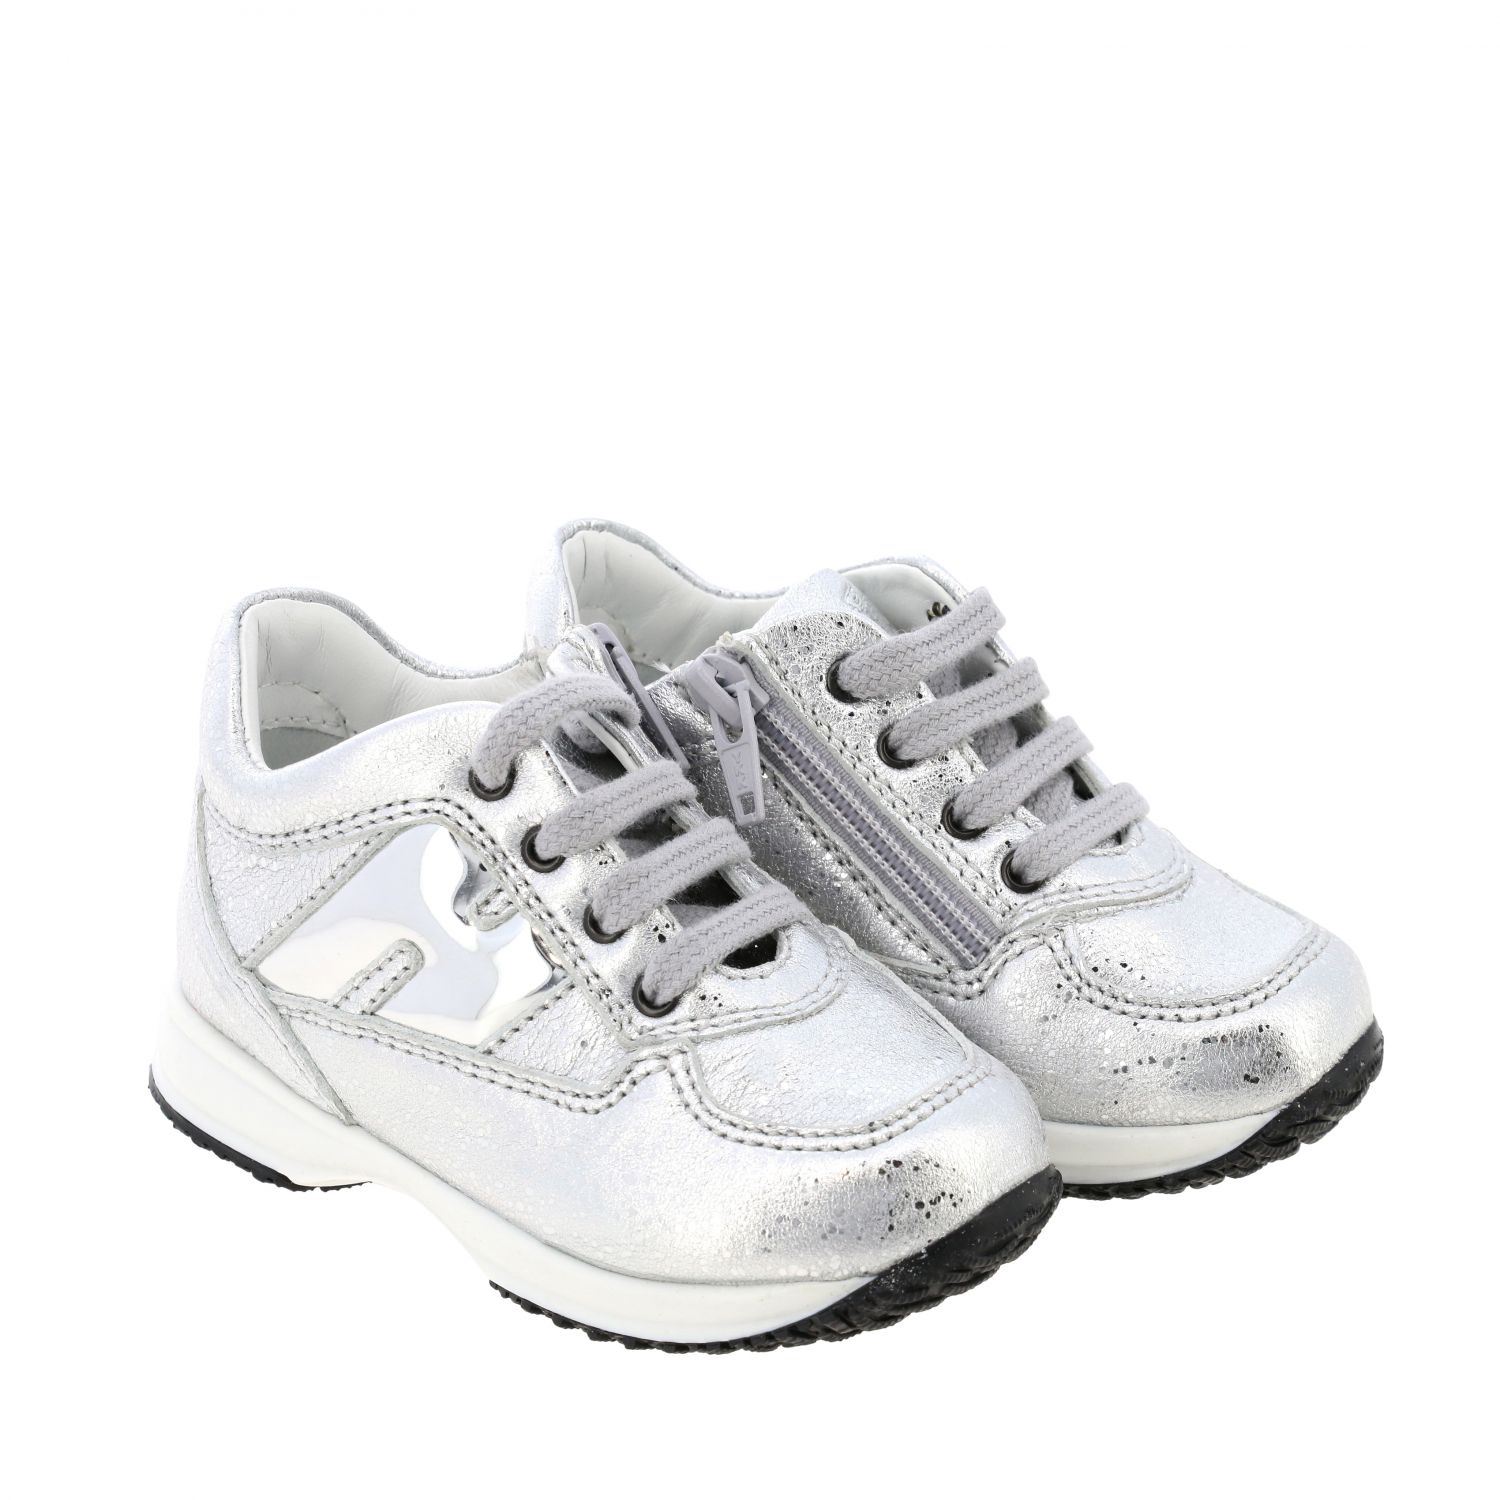 Shoes Hogan Baby: Shoes kids Hogan Baby silver 2